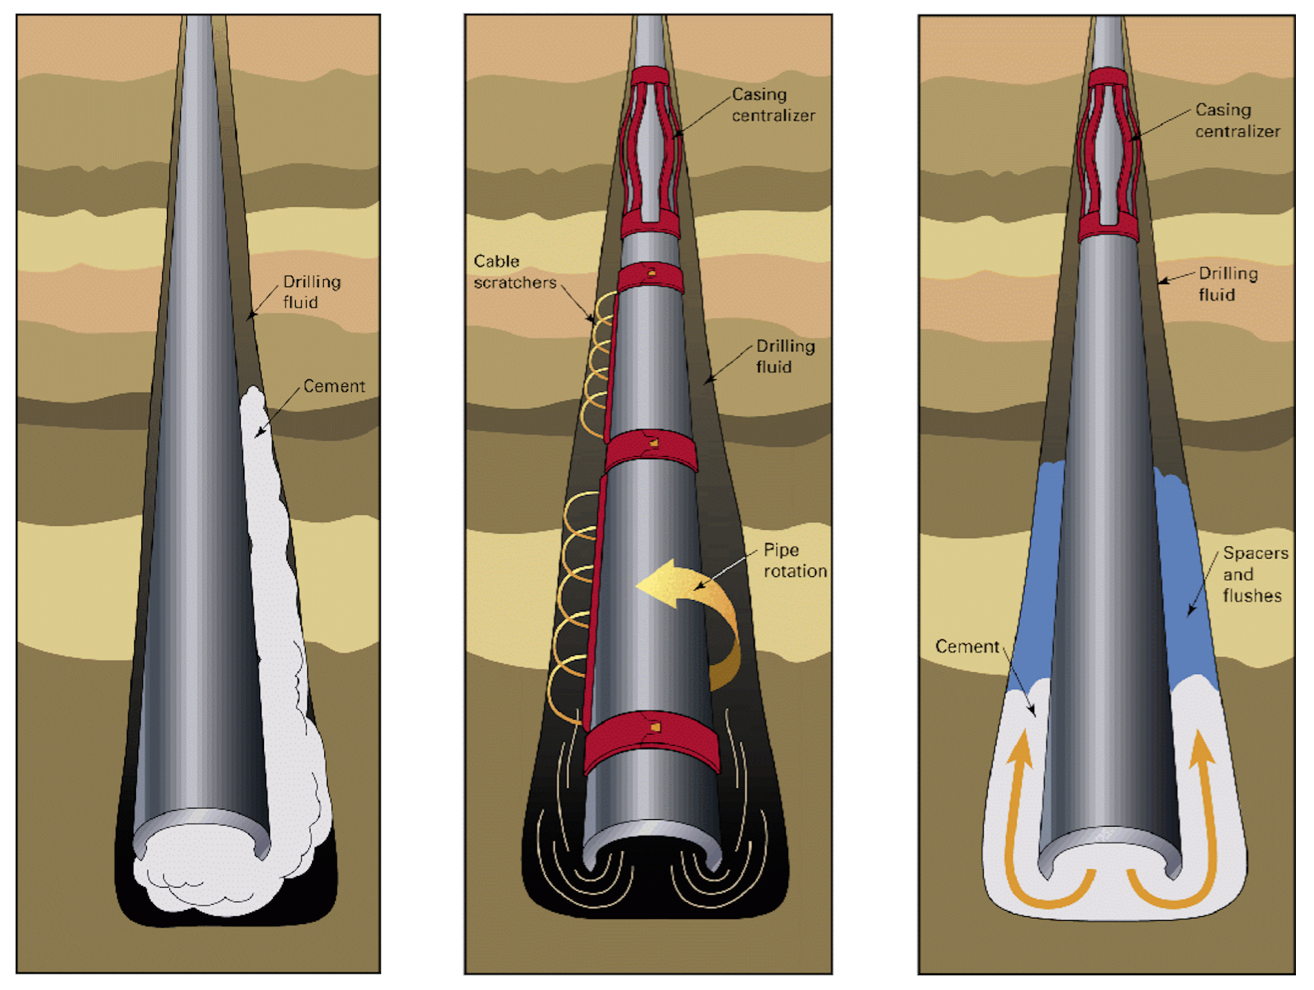 Schematic of drilling operation